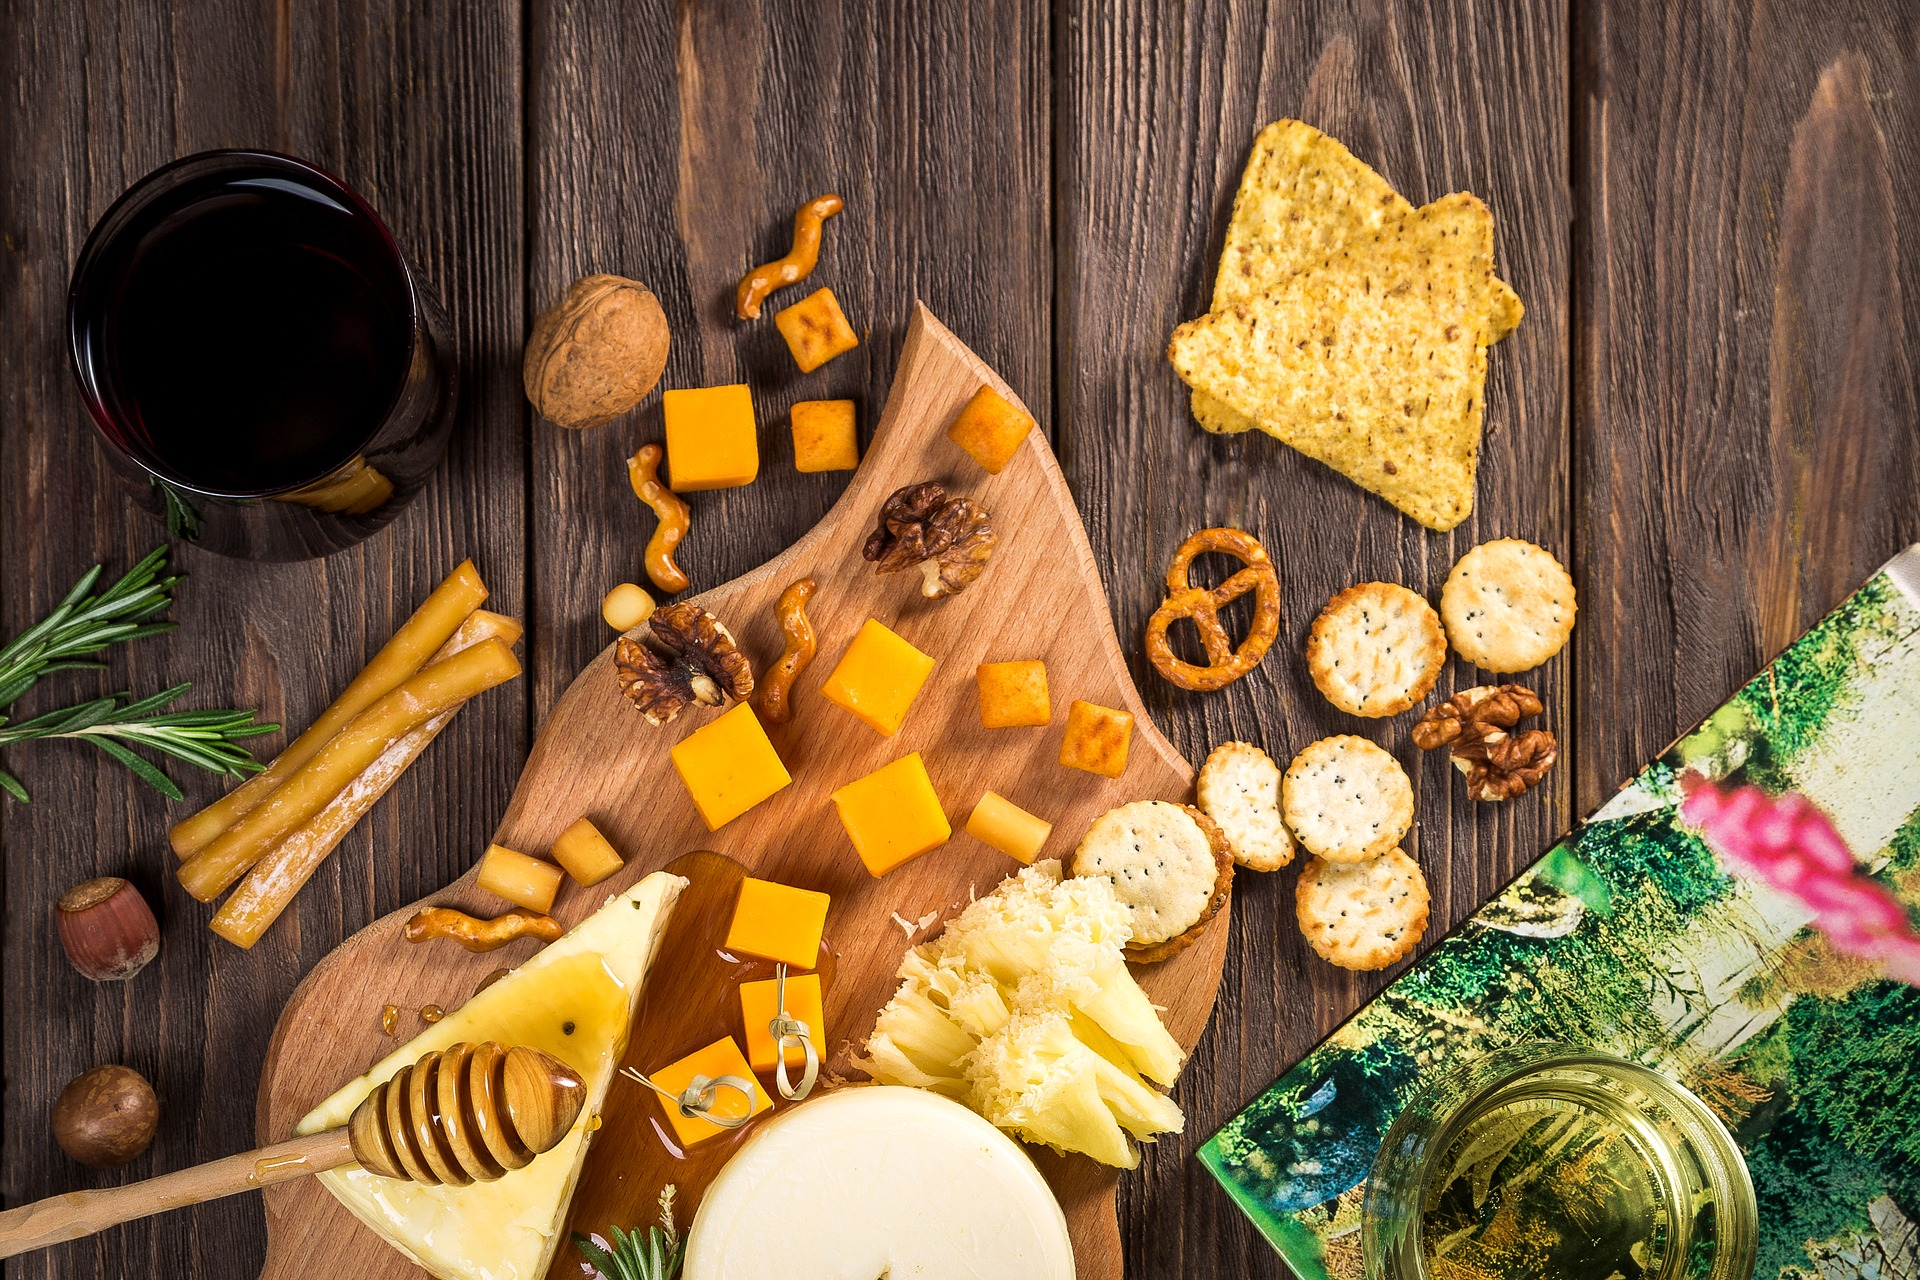 assortment of cheese, crackers, pretzels and honey